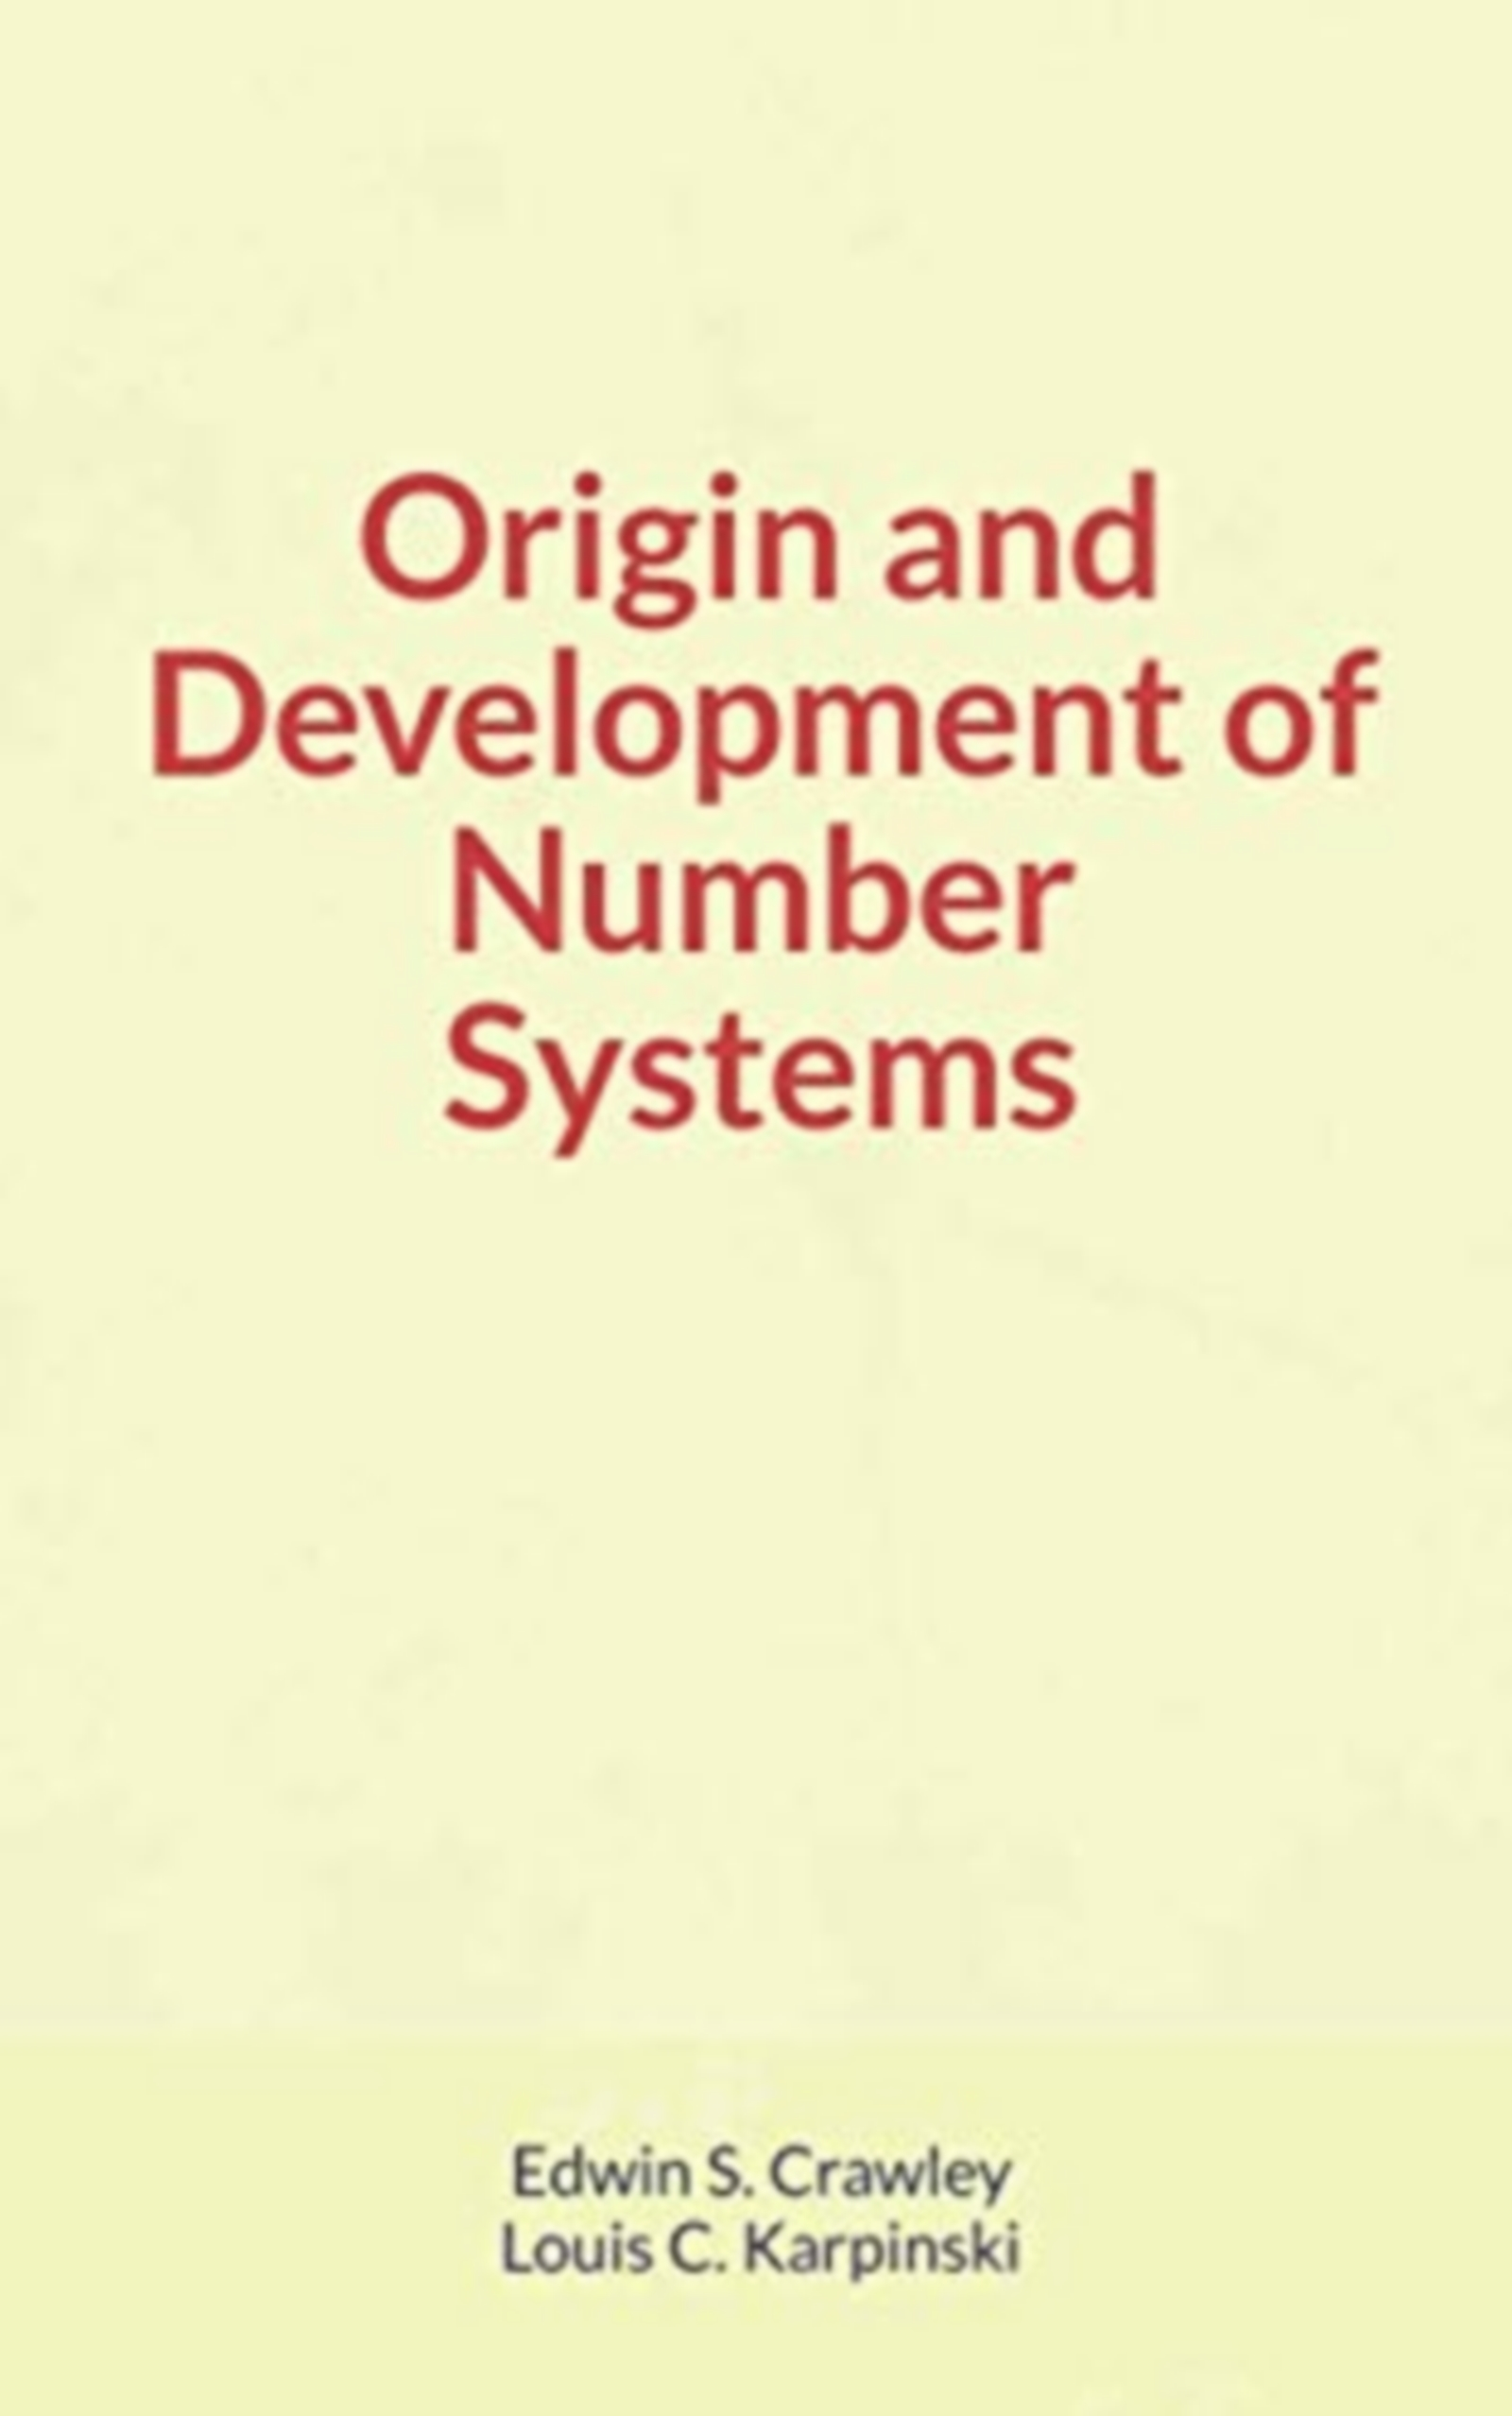 Origin and Development of Number Systems